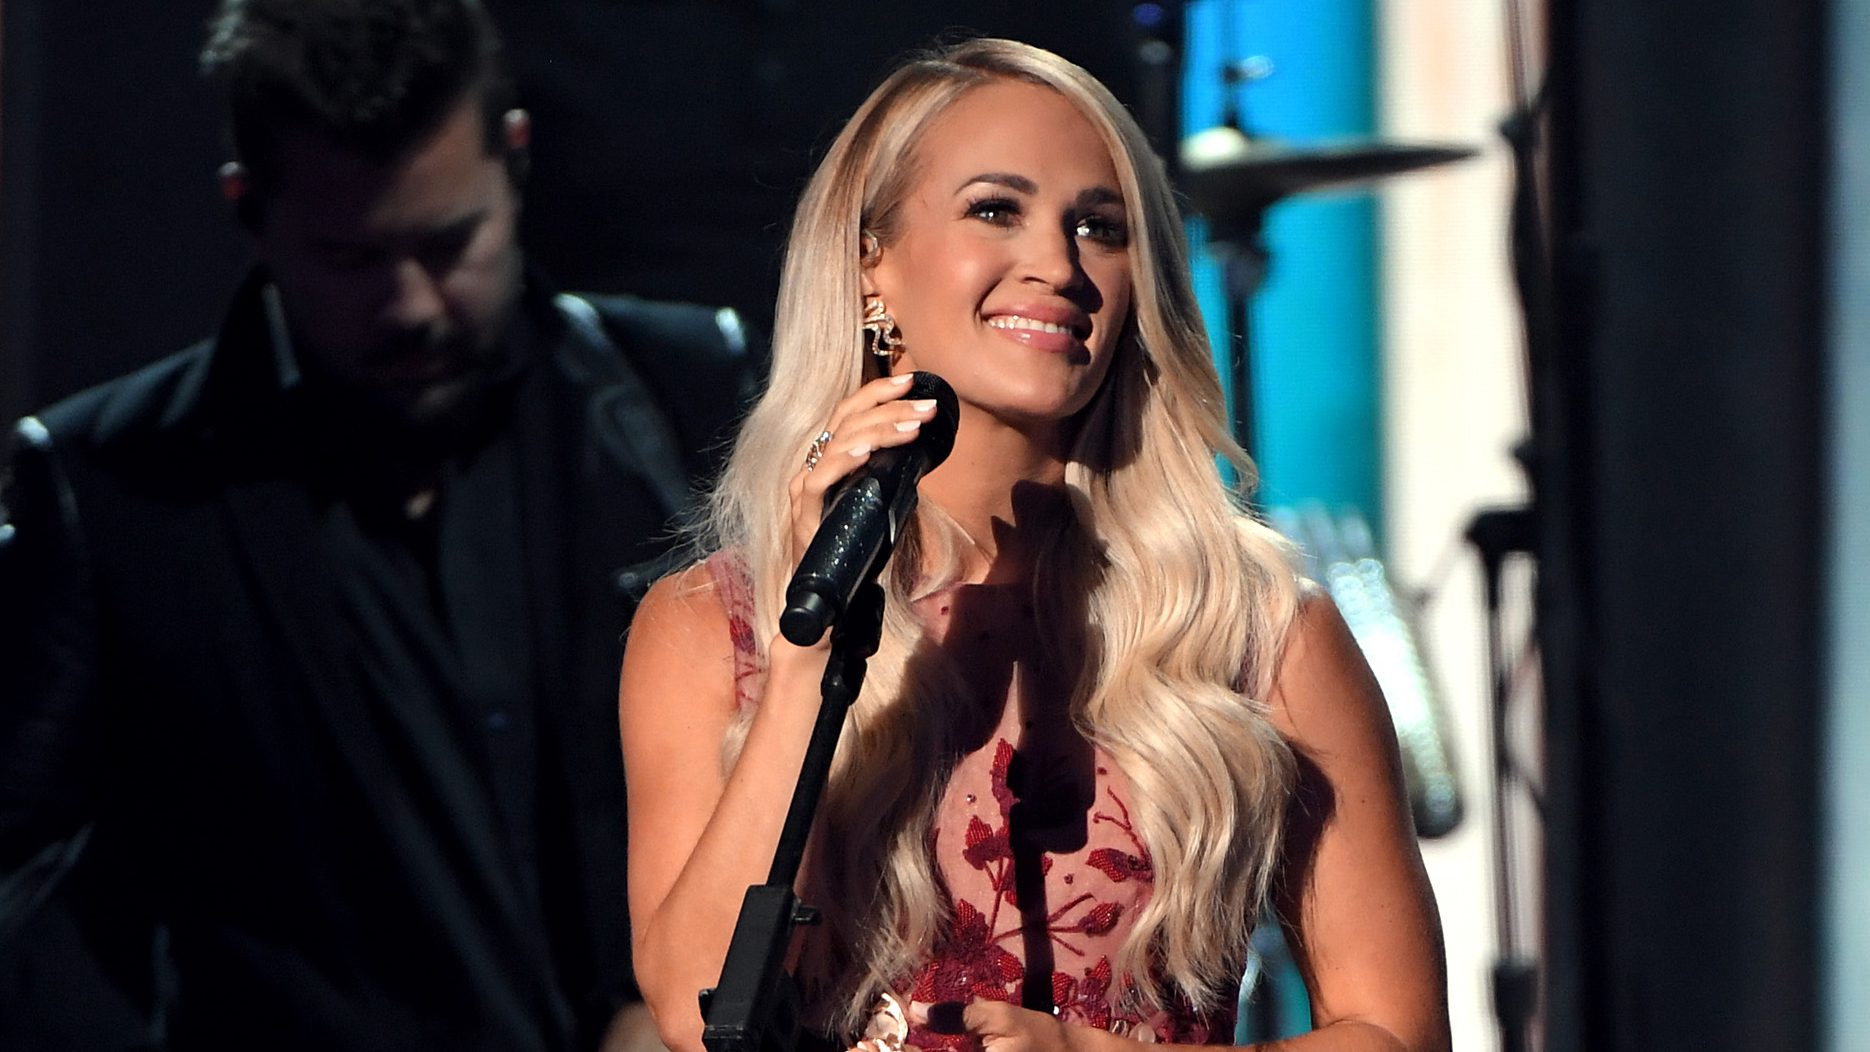 Carrie Underwood performs medley of songs from country's iconic women at 2020 ACM Awards – Fox News